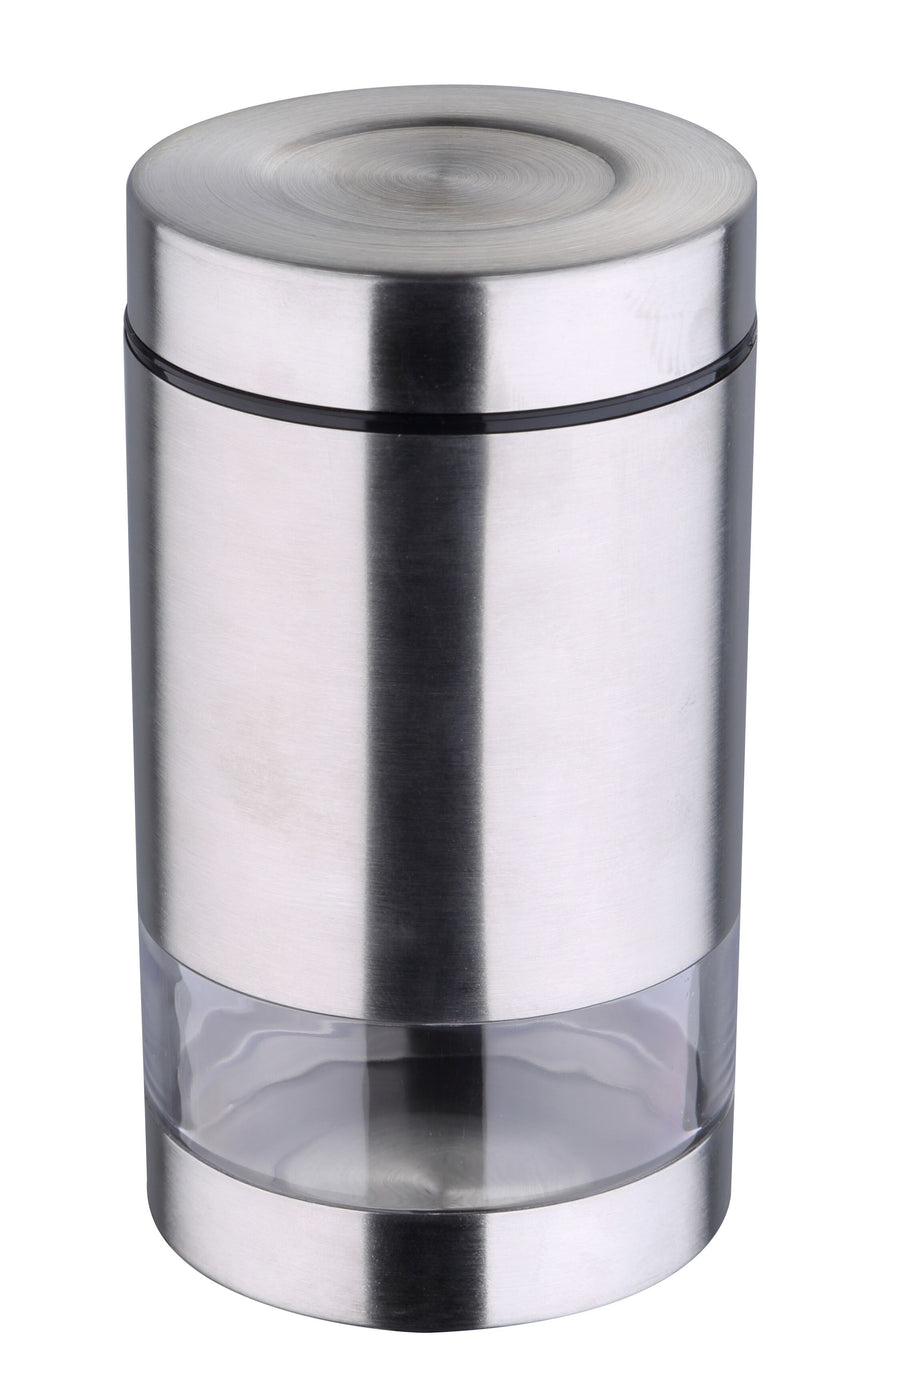 Canister 450 ml Stainless Steel (Silver)